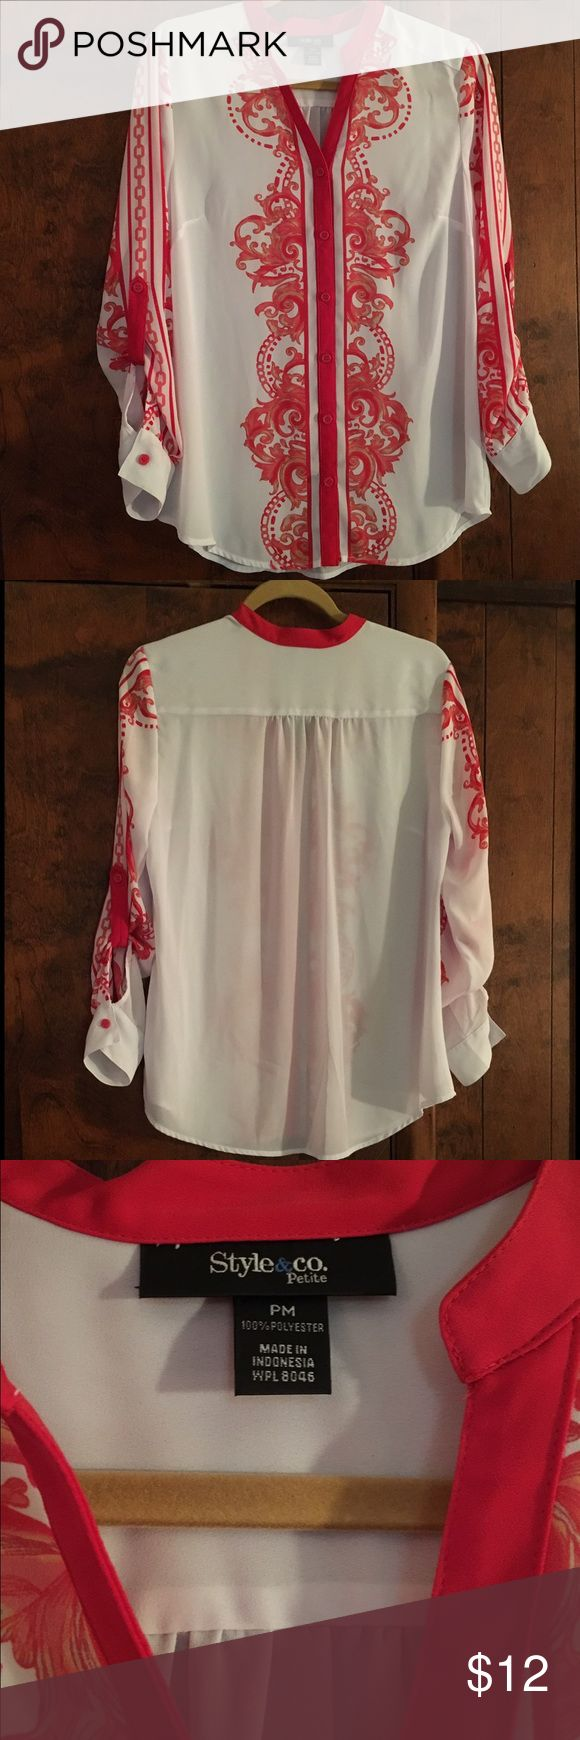 """Style & Company Blouse Petites Size Medium Style & Company Petites Size Medium Button Front Blouse with Roll Tabs.  Armpit to Armpit 20"""" Sleeve Length 22.5"""" From Collar to Bottom of Hem 27"""". Style & Co Tops Blouses"""